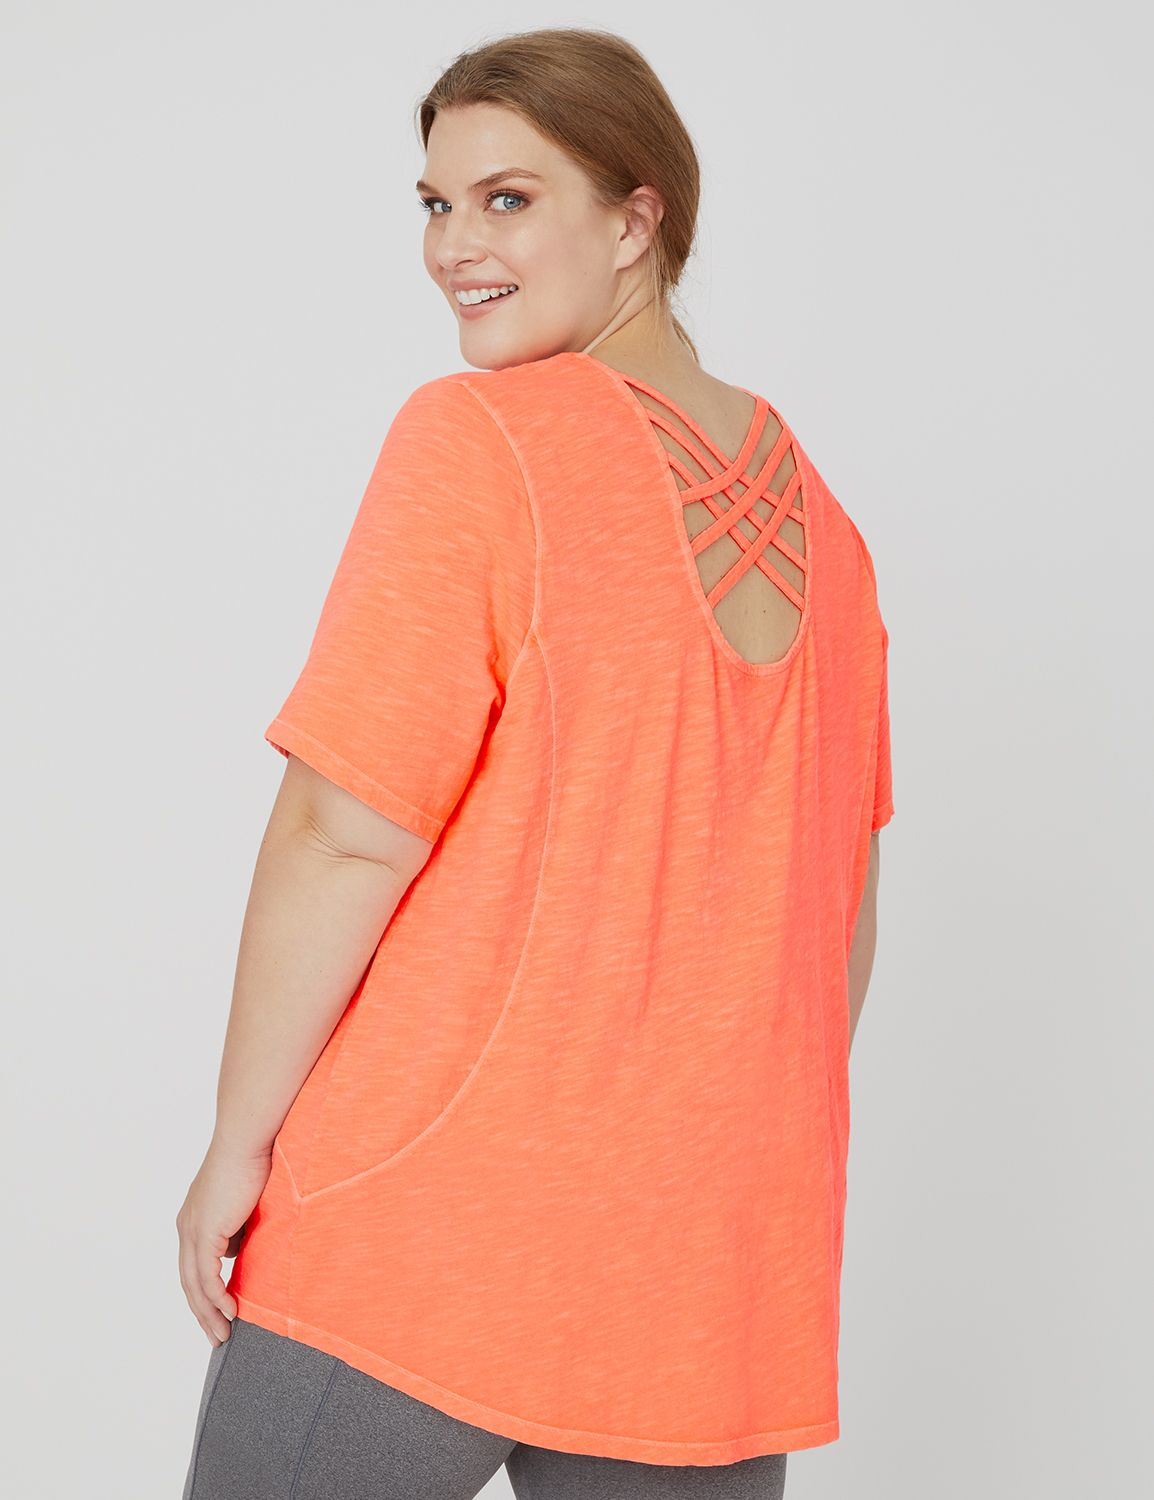 Short-Sleeve Crisscross Active Tee 1088551 SS Criss-Cross Back Top MP-300097728